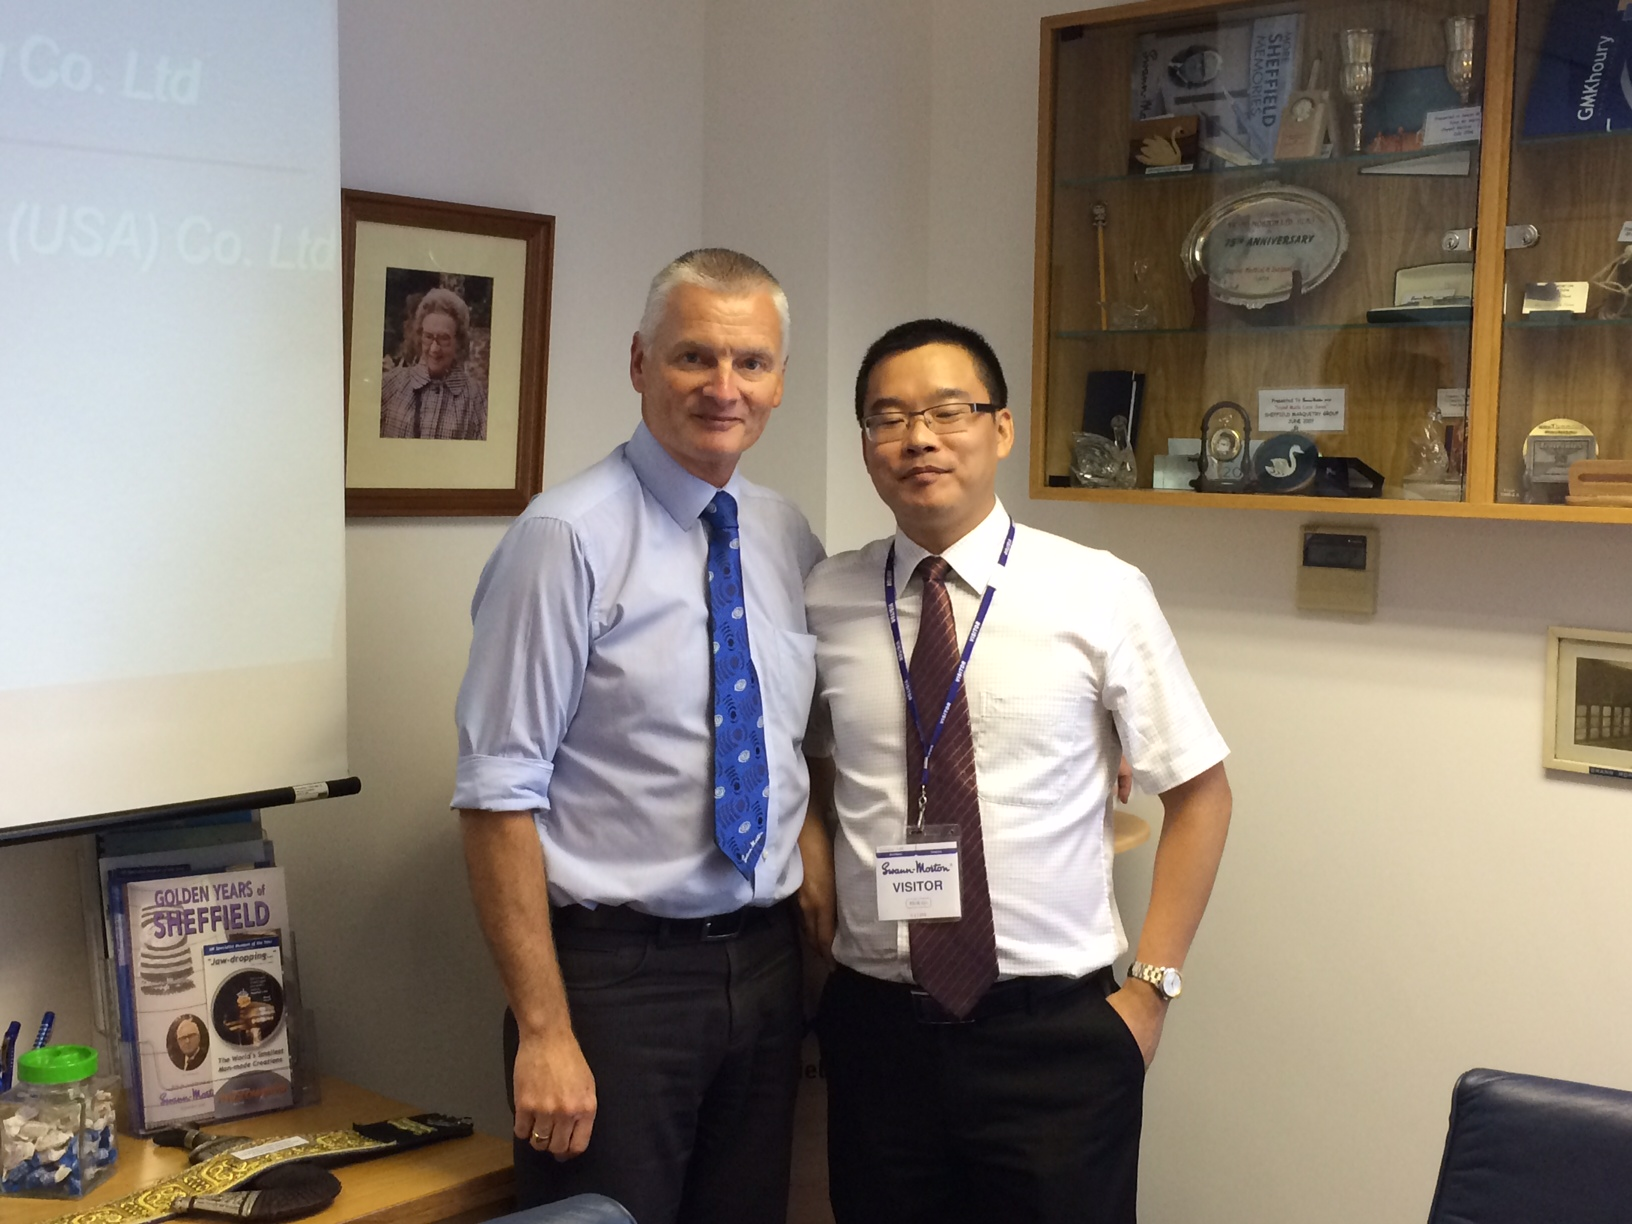 George Lee of Guangzhou Yongli Medical Instrument Co. Ltd on his recent visit to Swann-Morton in Sheffield.